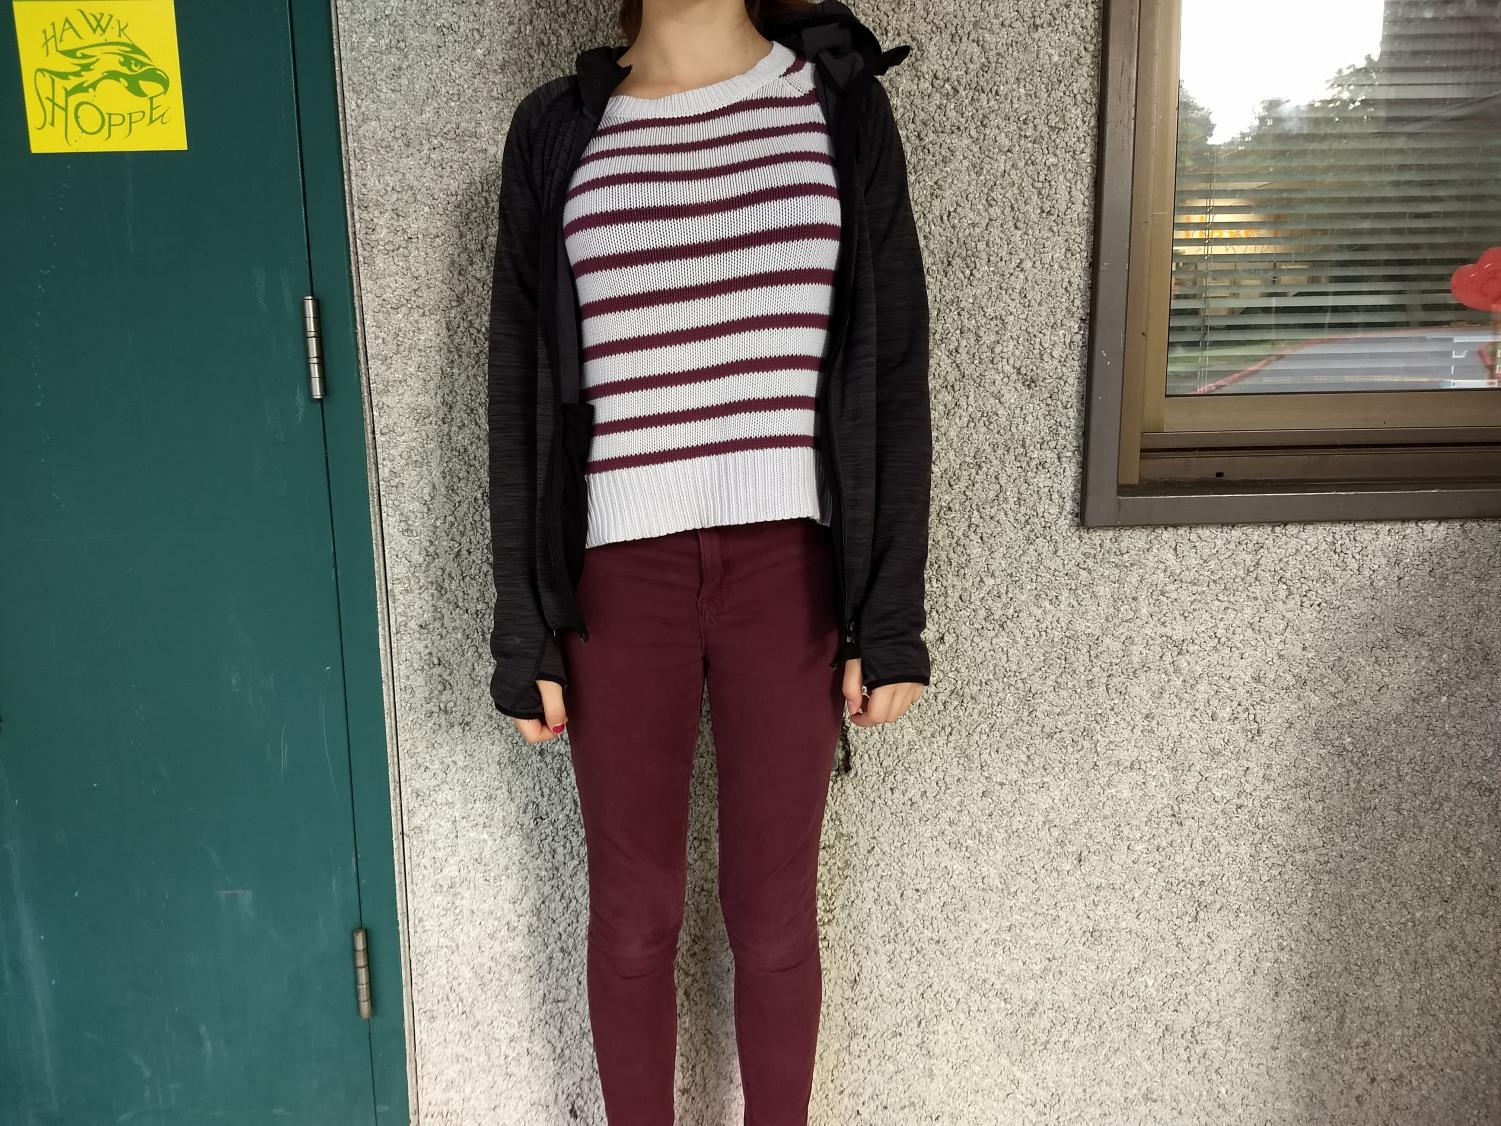 Victoria rocking a striped sweater and burgundy jeans.